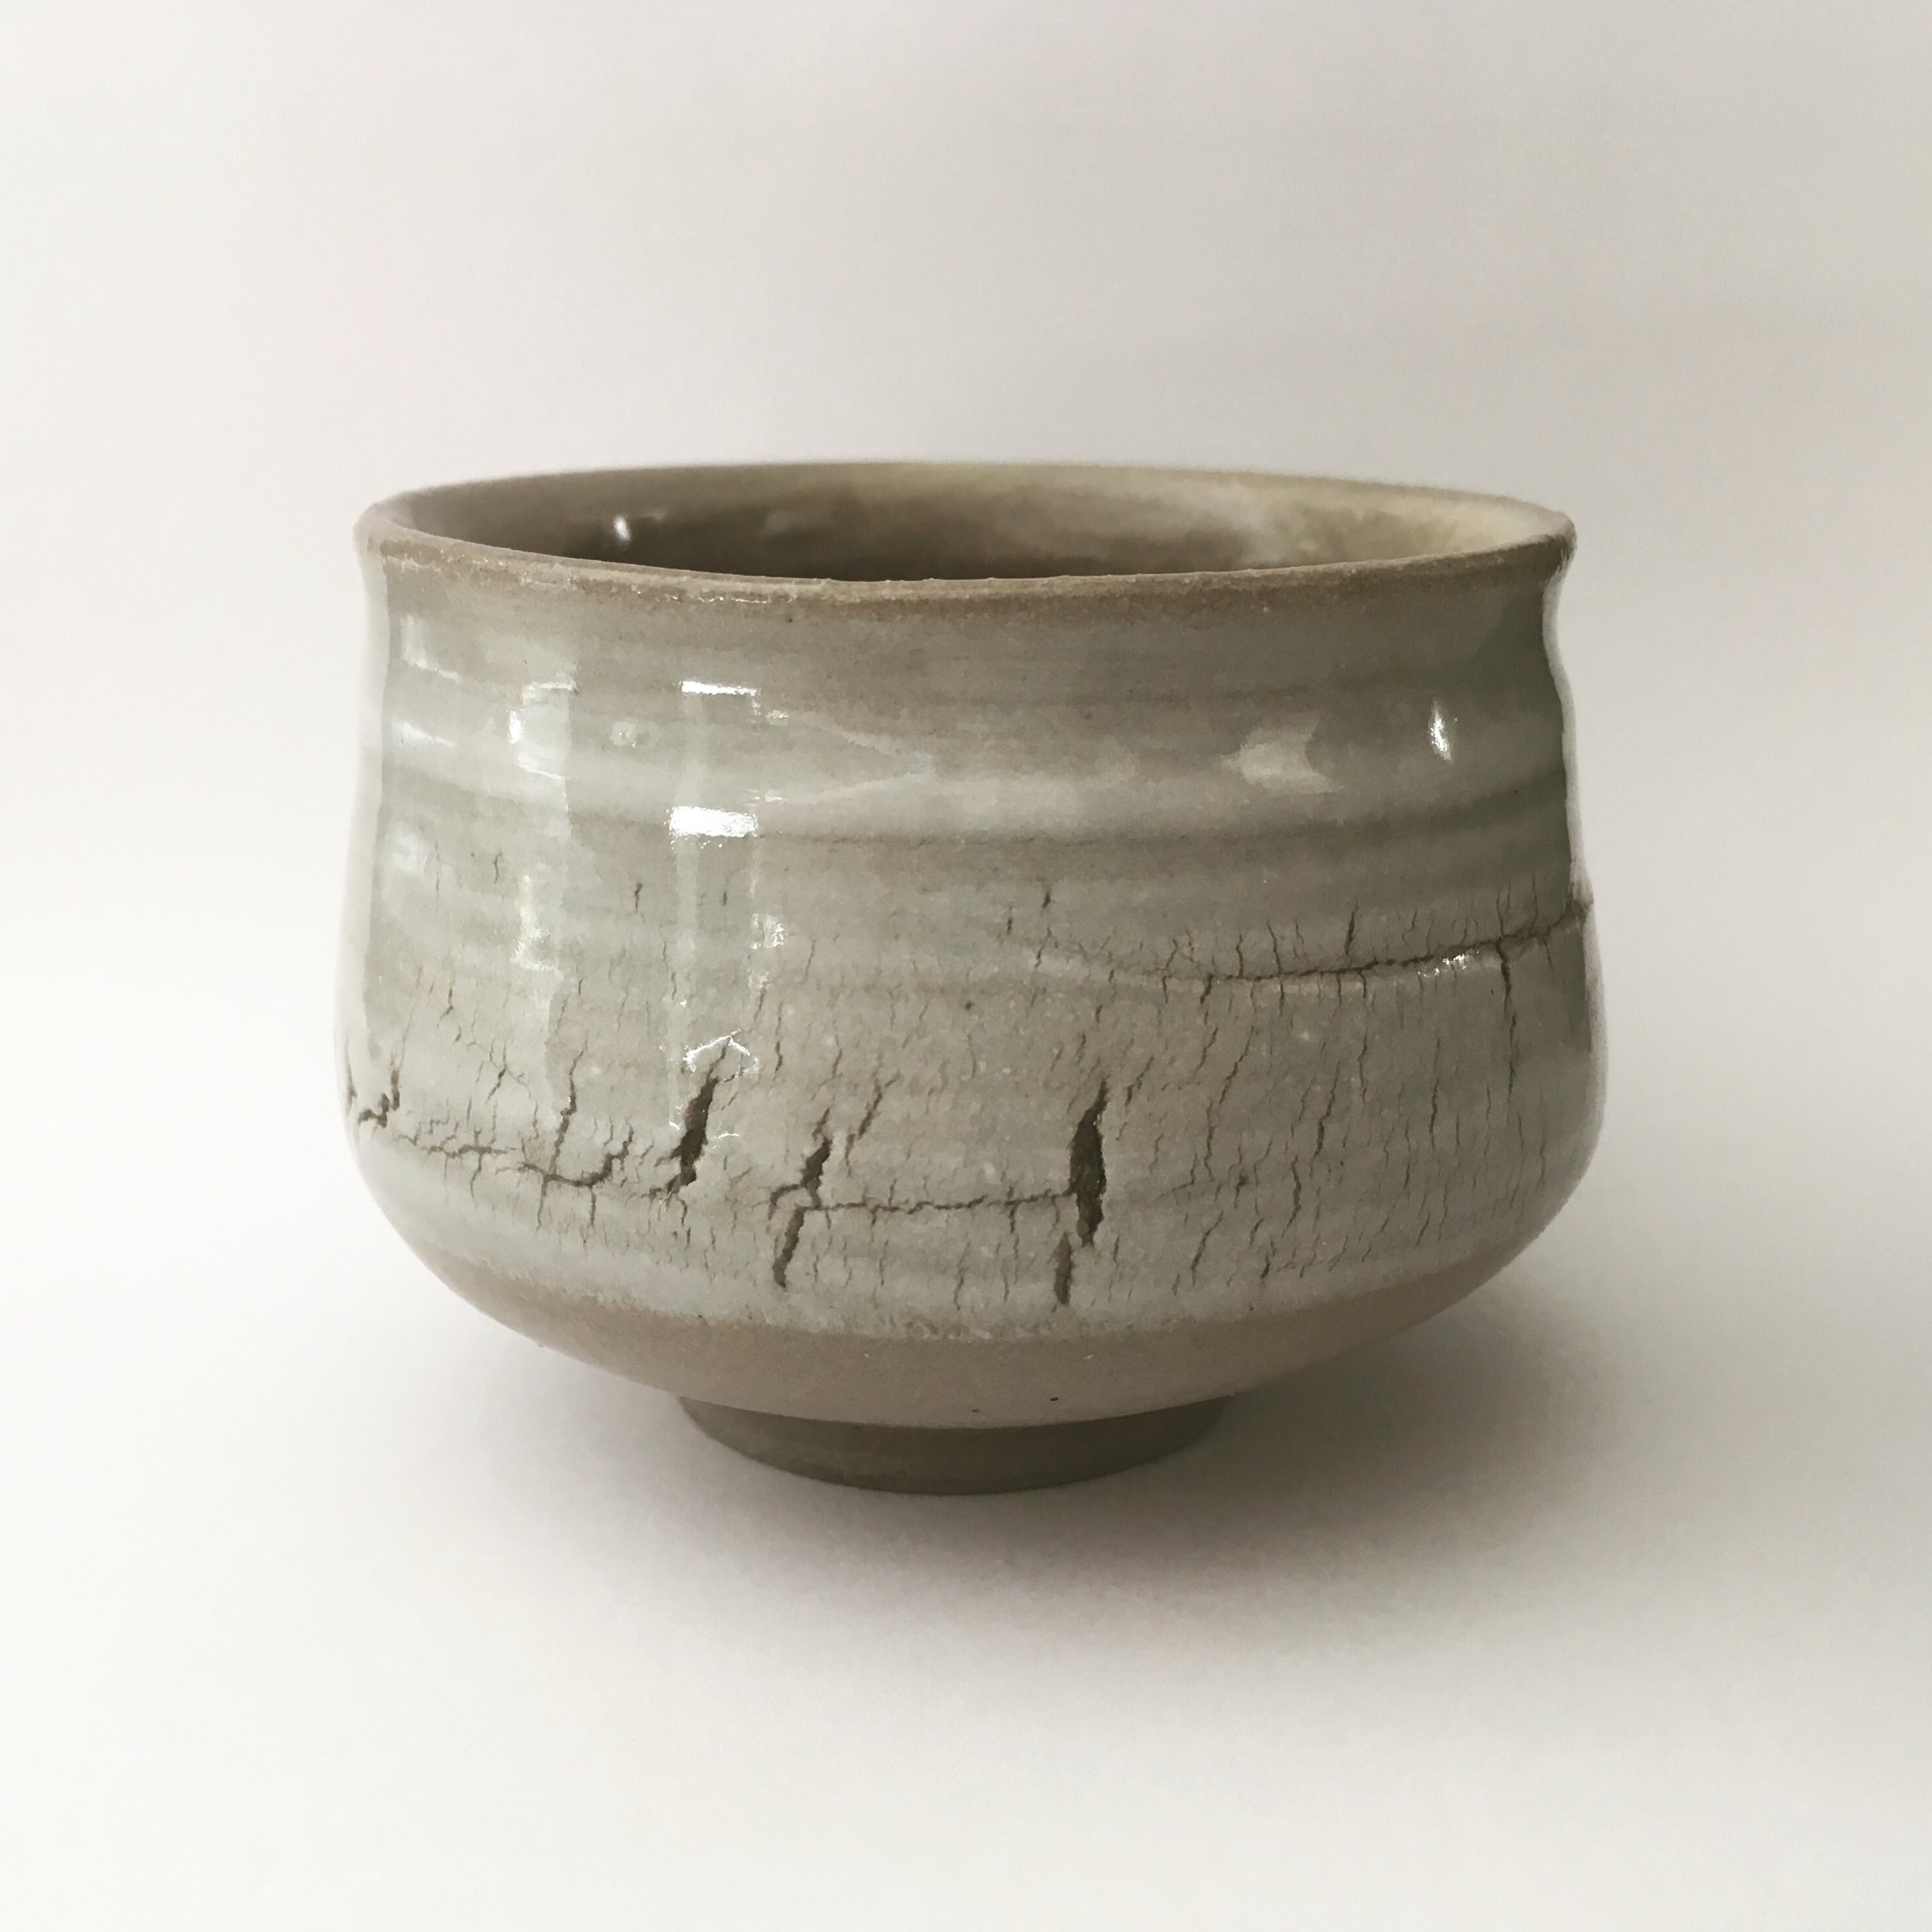 Chawan   Grey stoneware with porcelain crackled slip and transparant glaze.  Ø 7 cm  (Sold)